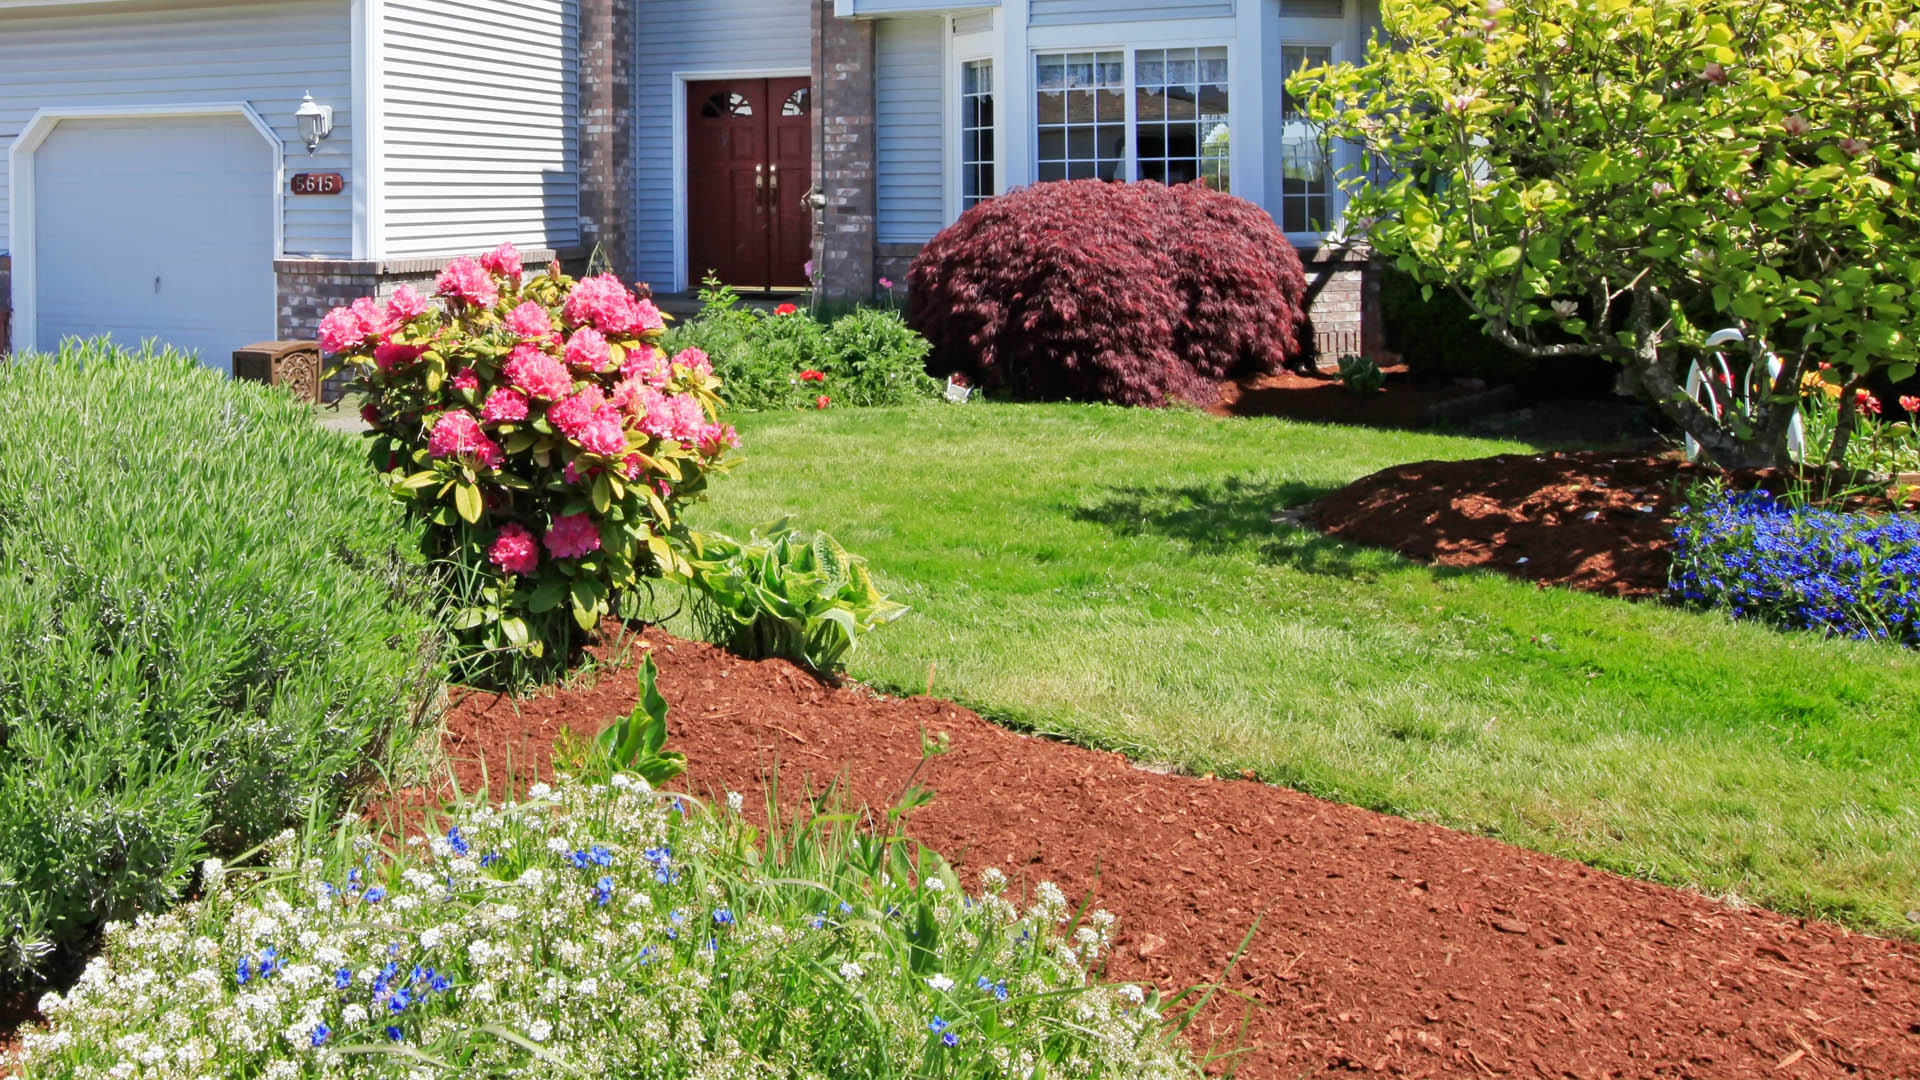 Professional landscaping design and installation service.